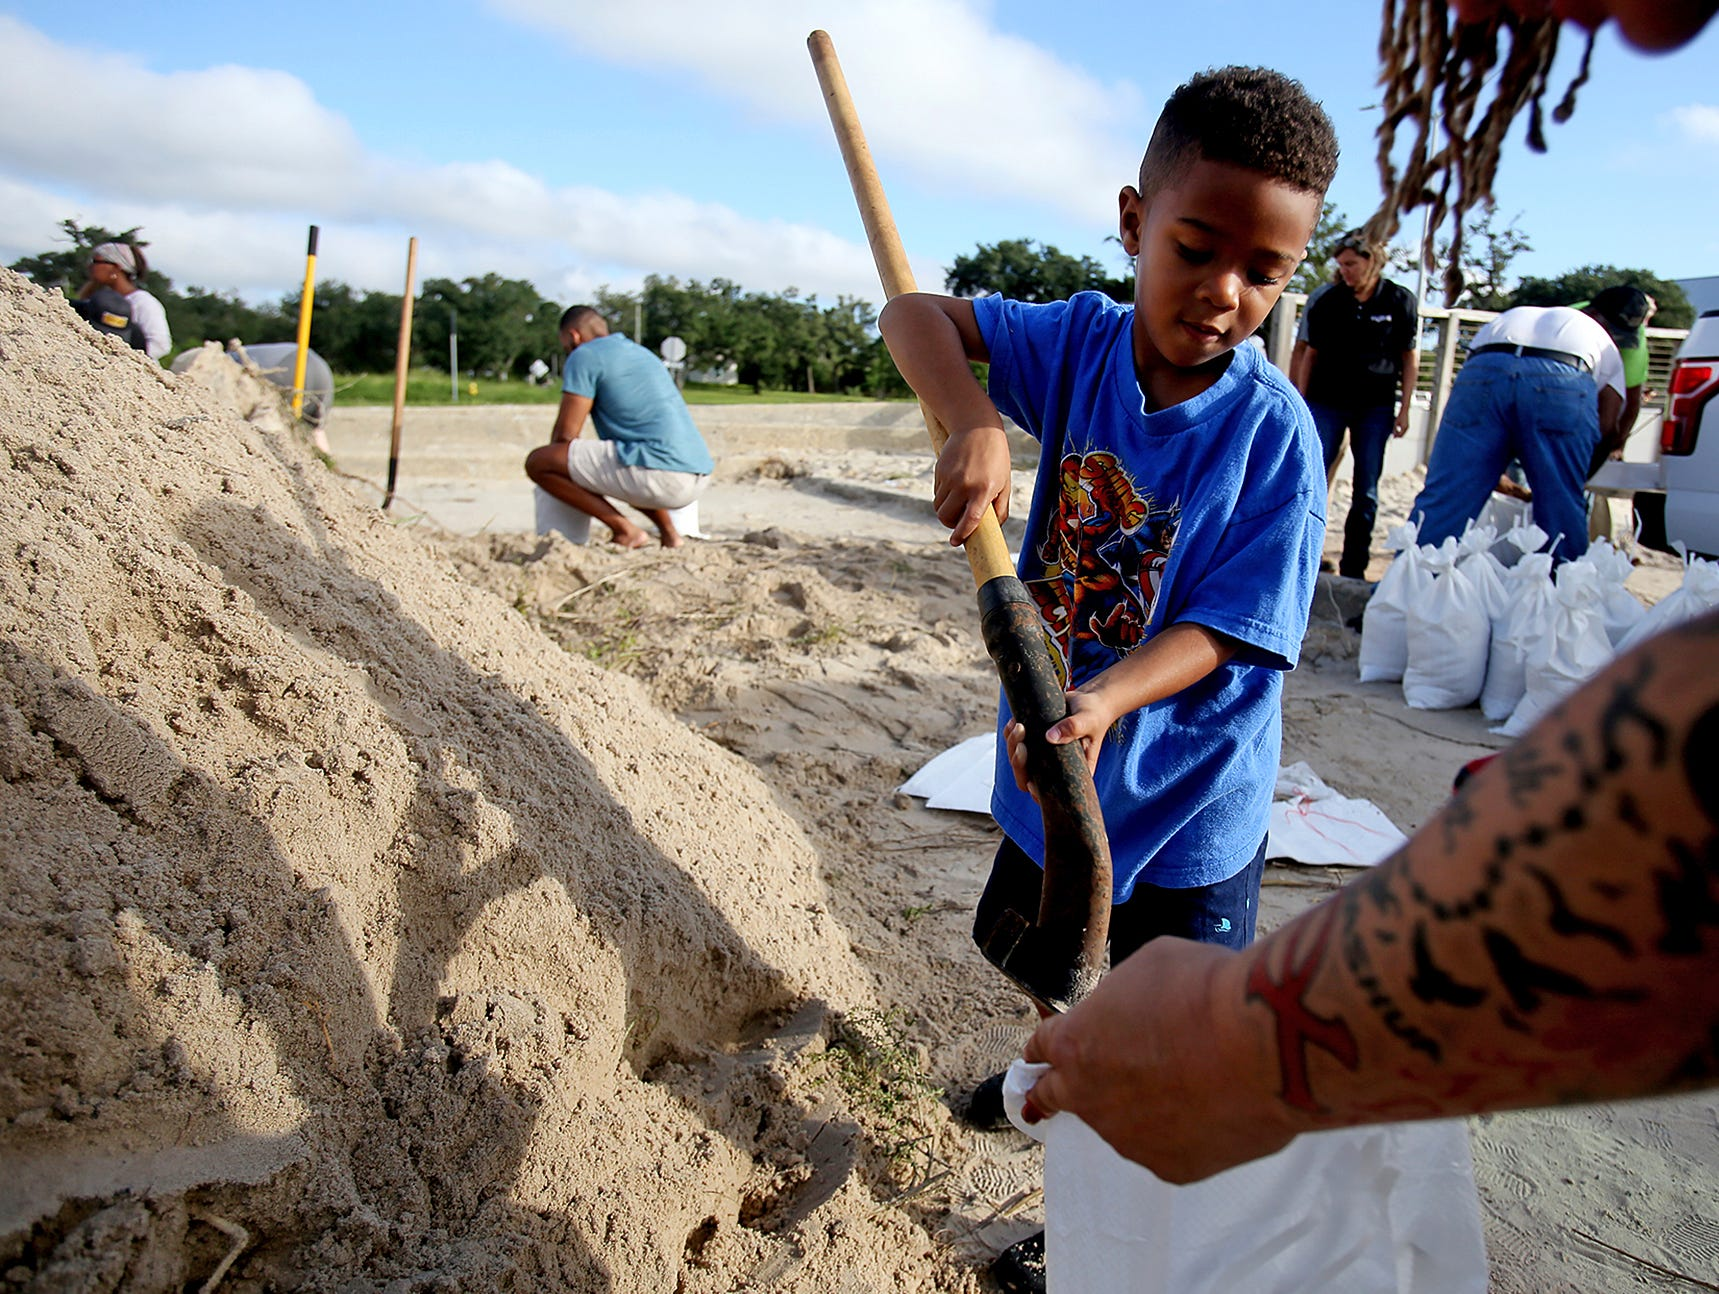 Kamdn Boose, 4, helps his family fill sandbags at Long Beach Harbor, Tuesday, Sept. 4, 2018, in Long Beach, Miss., in advance of Tropical Storm Gordon.